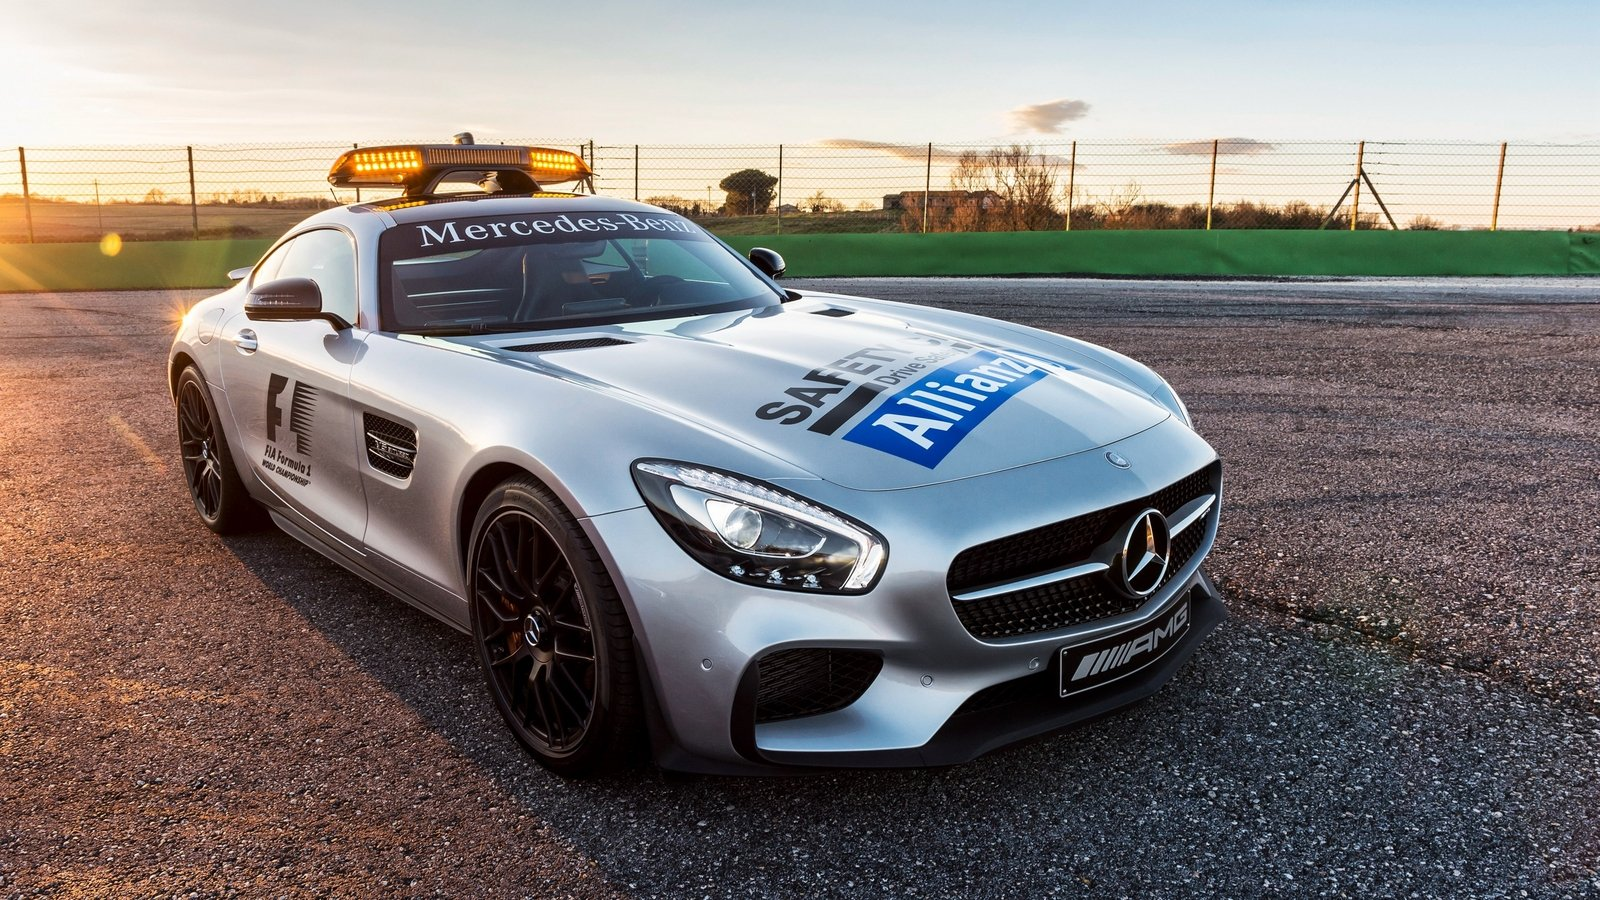 2015 mercedes amg gt s f1 safety car review top speed. Black Bedroom Furniture Sets. Home Design Ideas